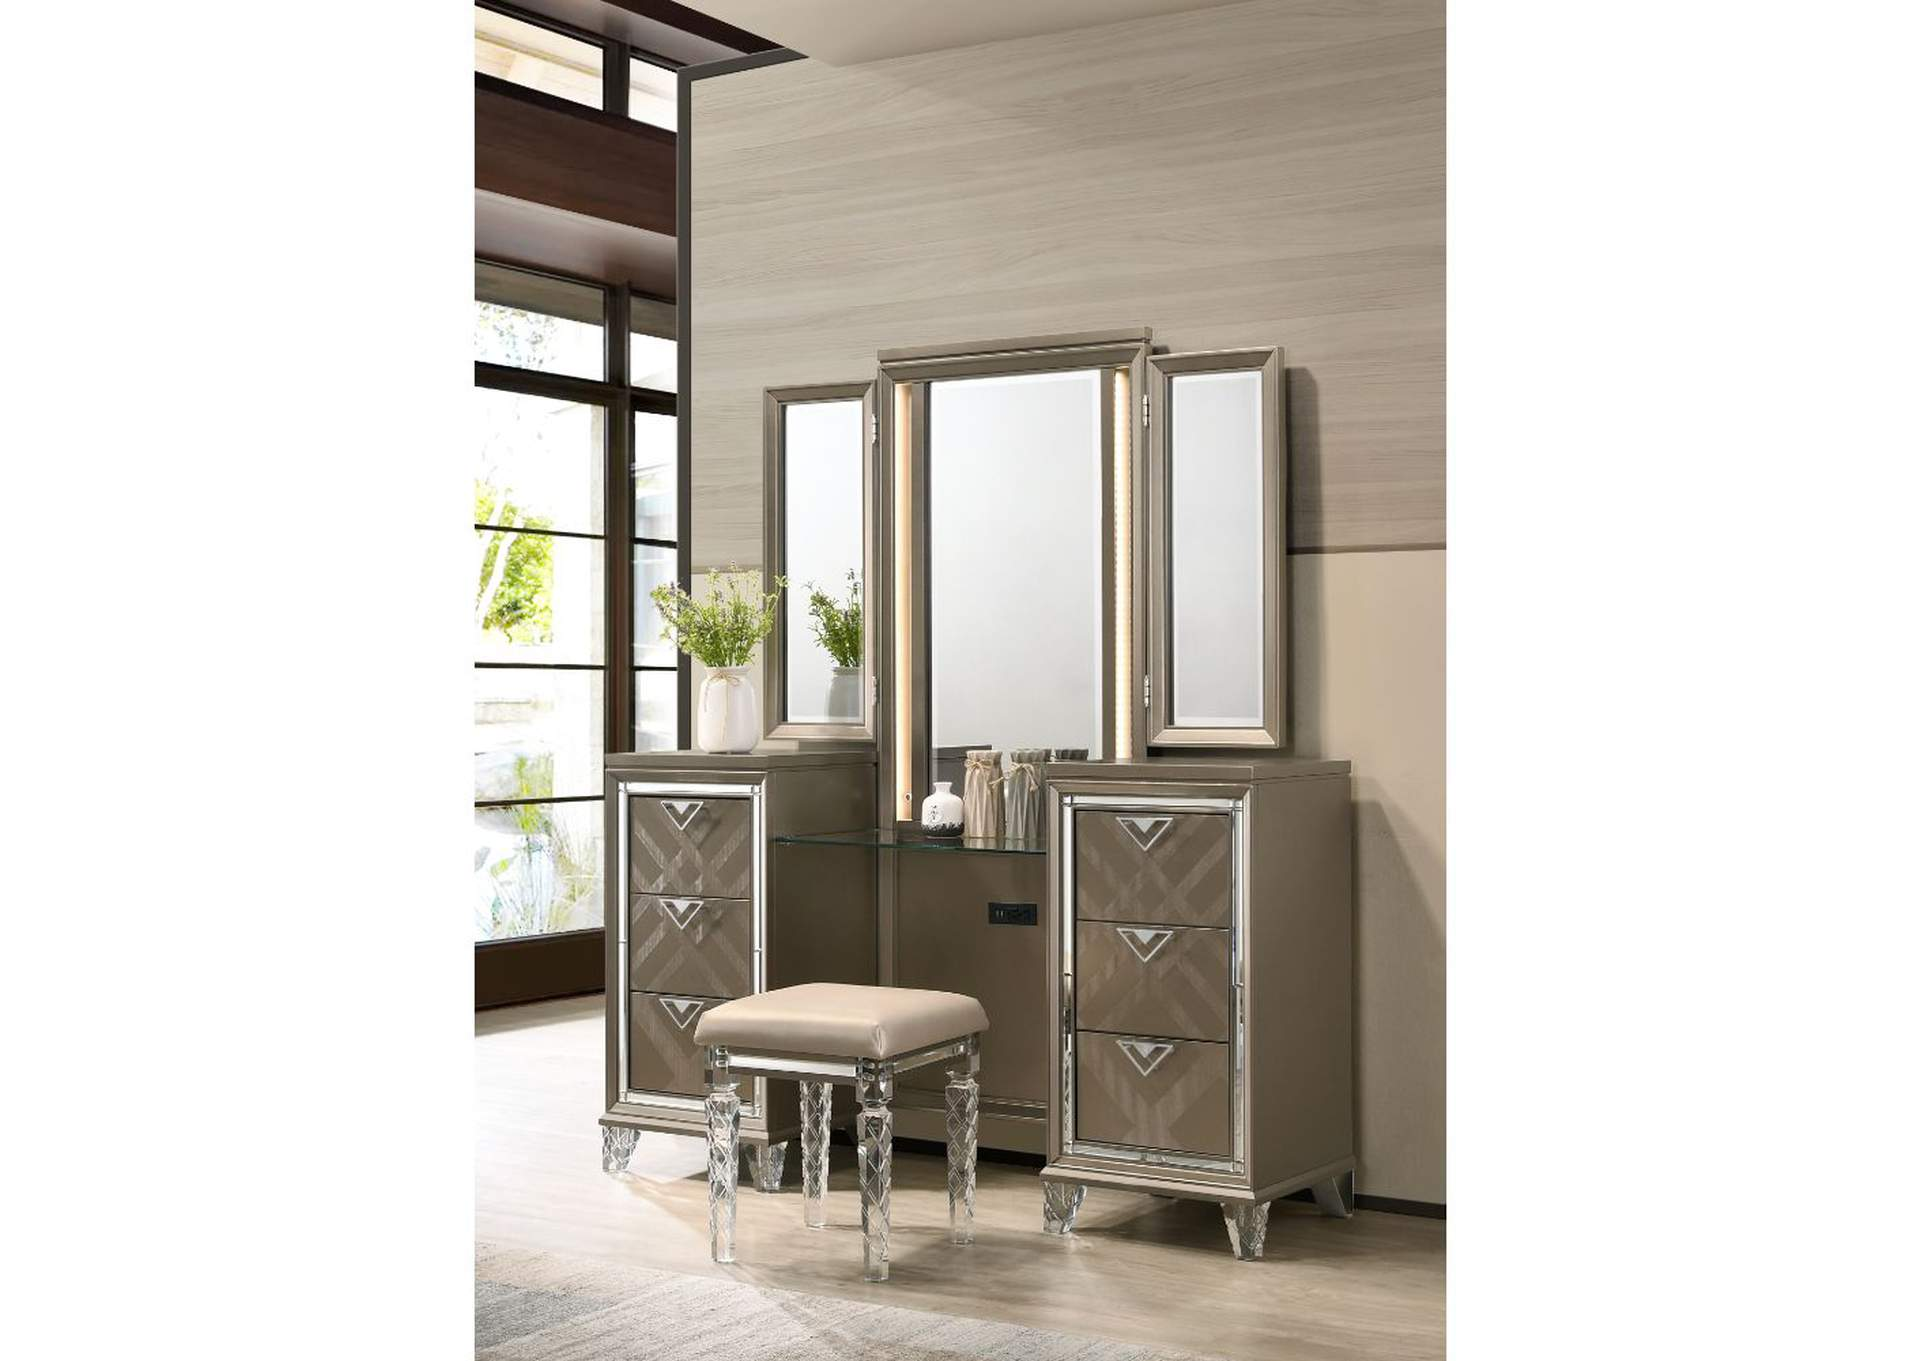 Skylar Champagne Vanity Desk Mirror and Stool,Acme